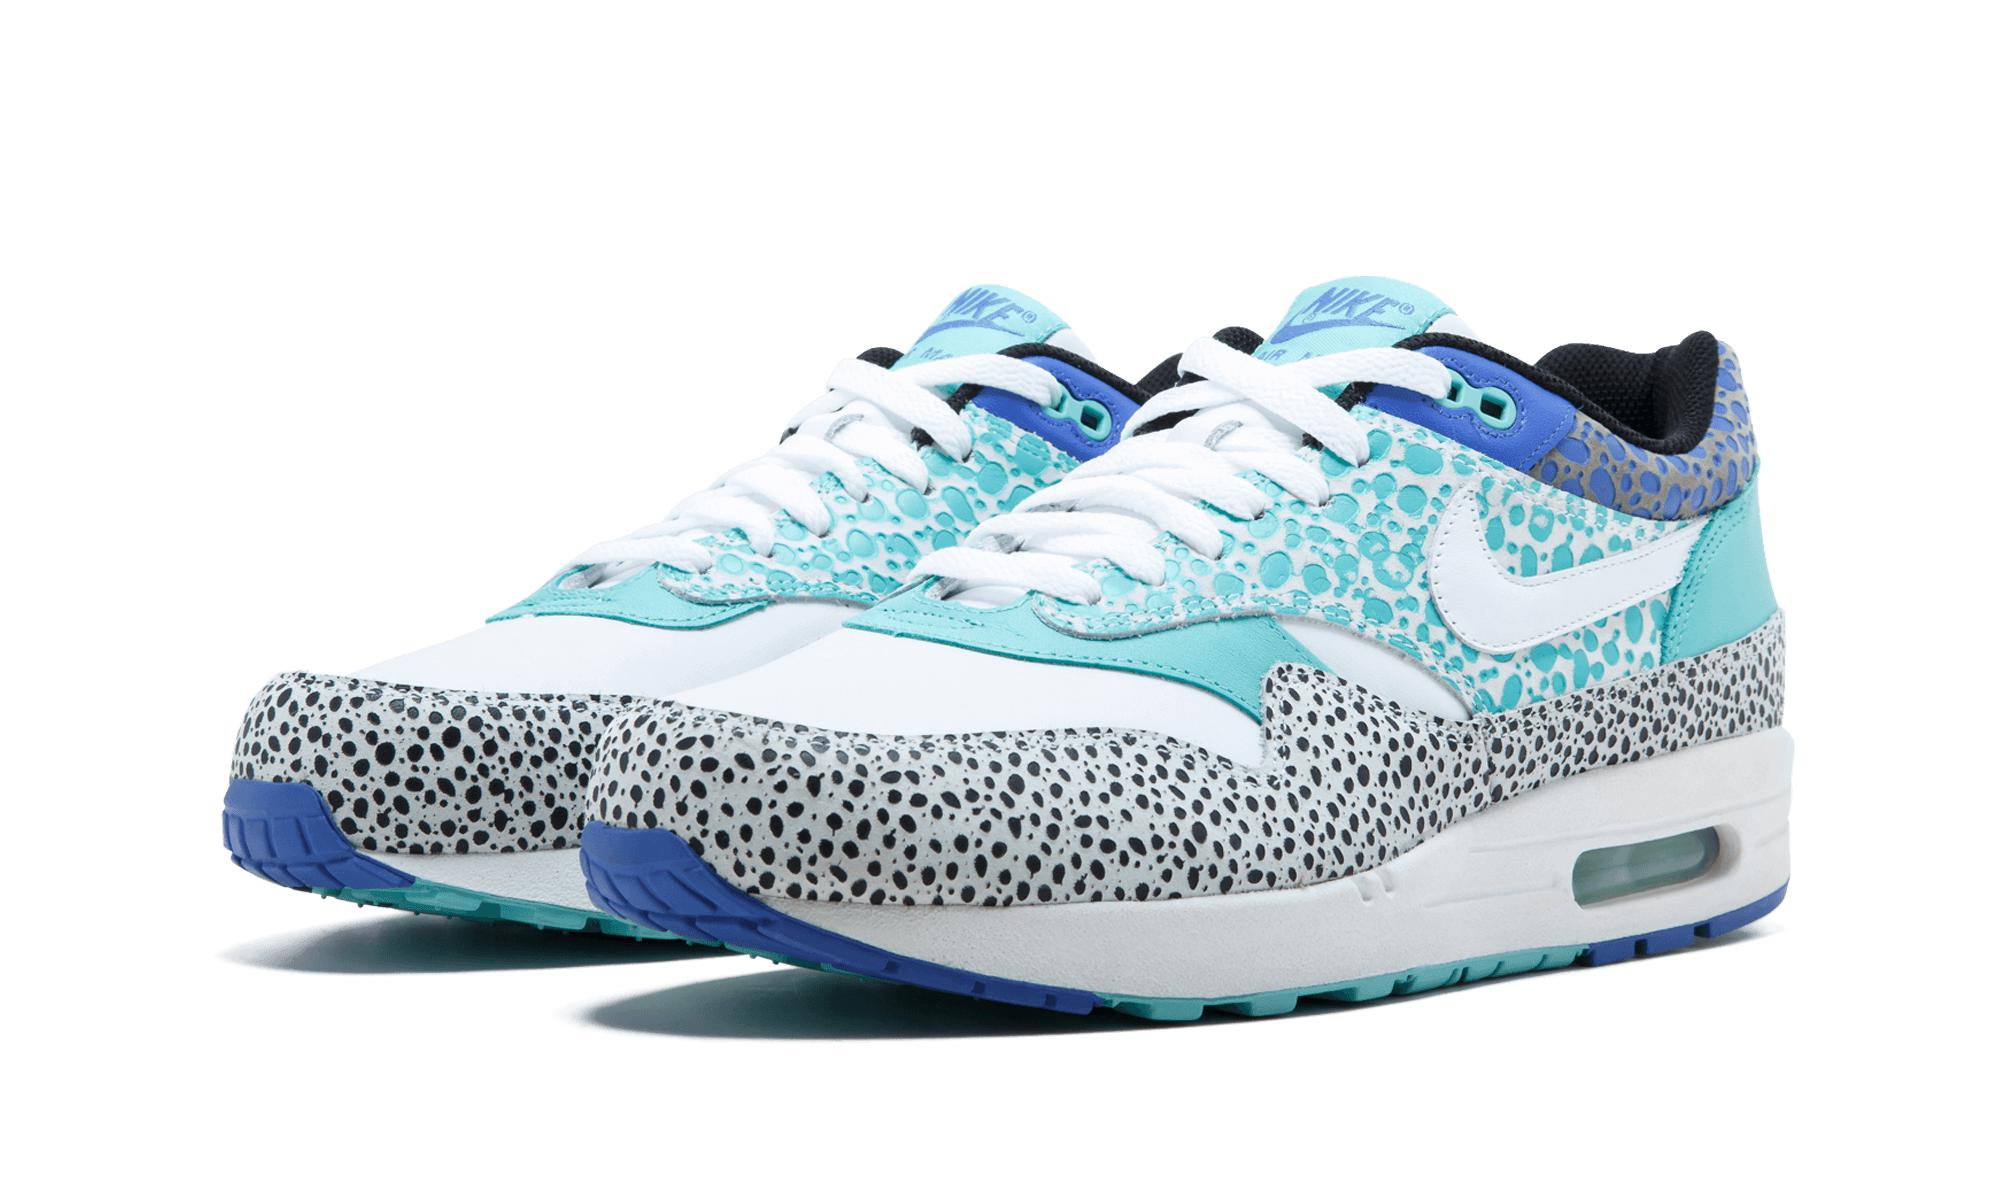 33360bf04de9ae ... Air Max 1 Premium Sp - Lyst. View fullscreen